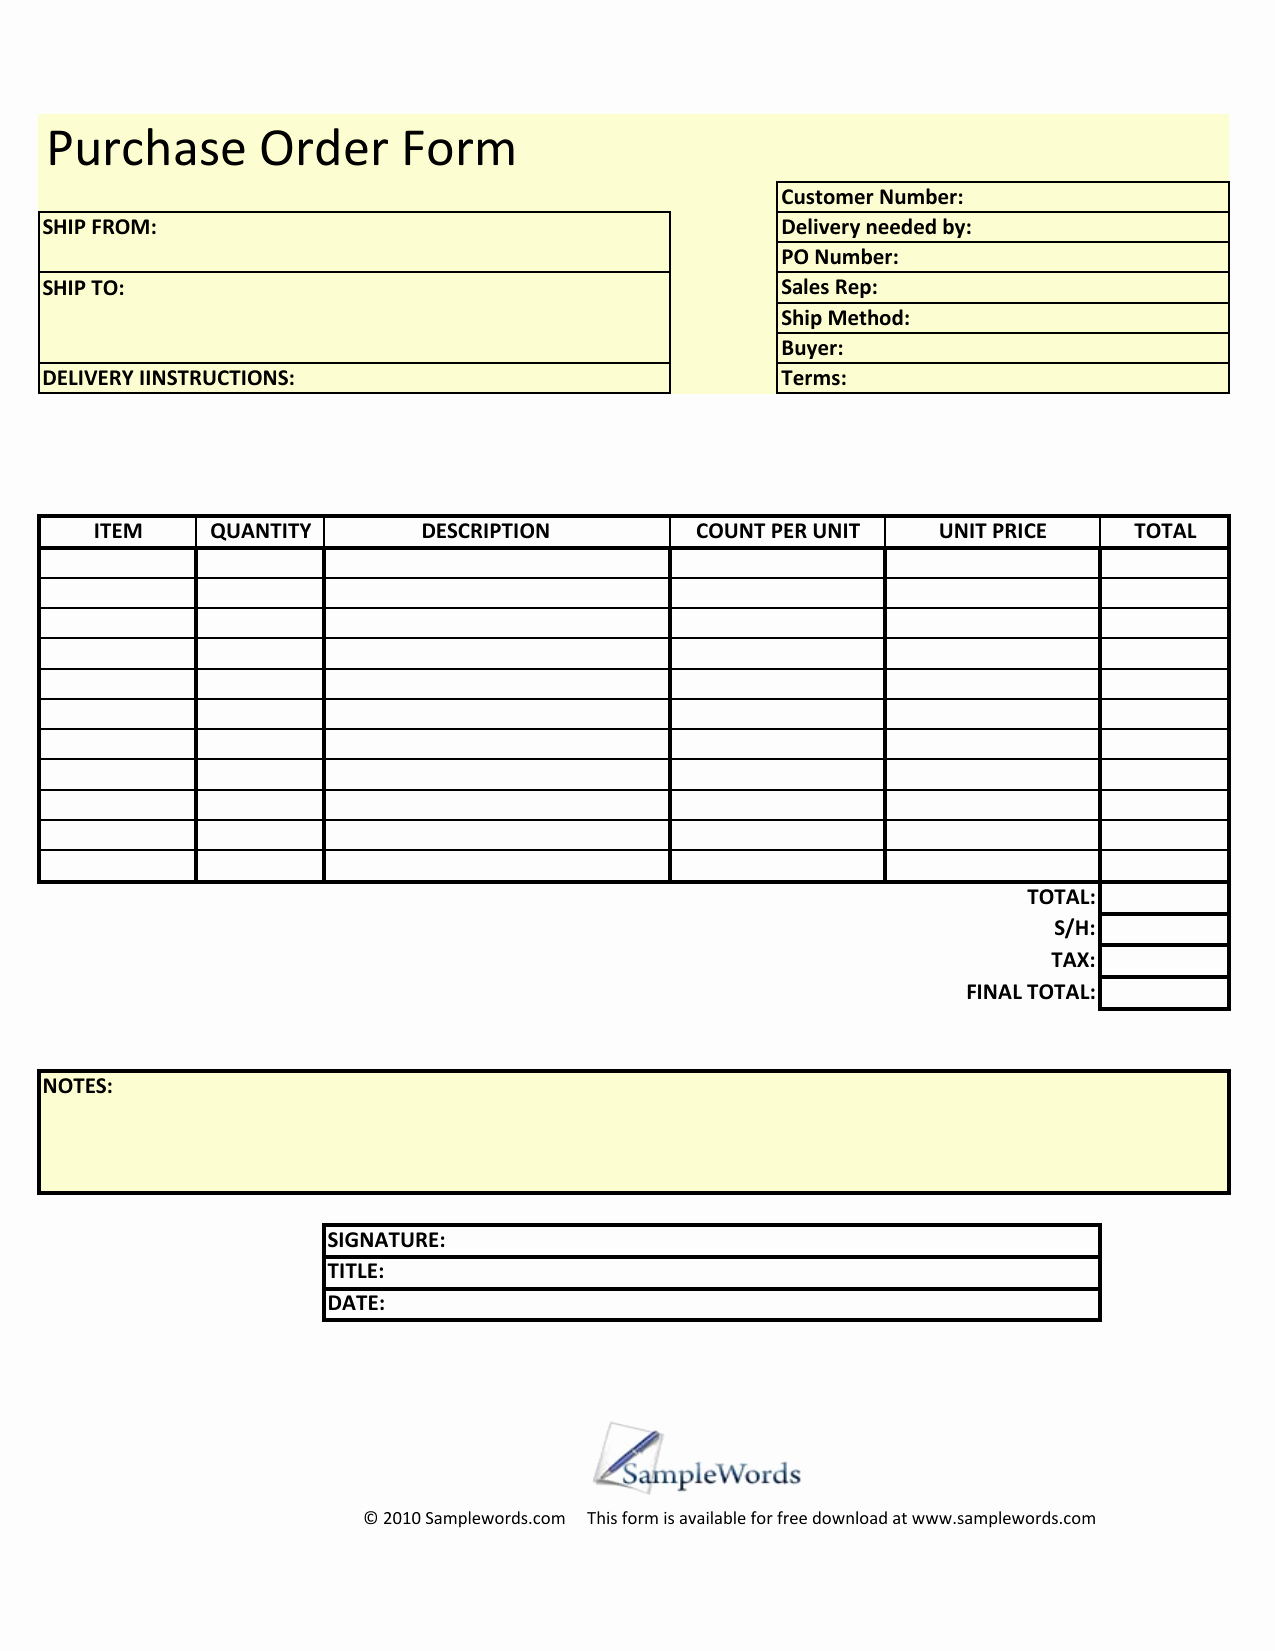 Generic order form Template Unique Download Blank Purchase order form Template Excel